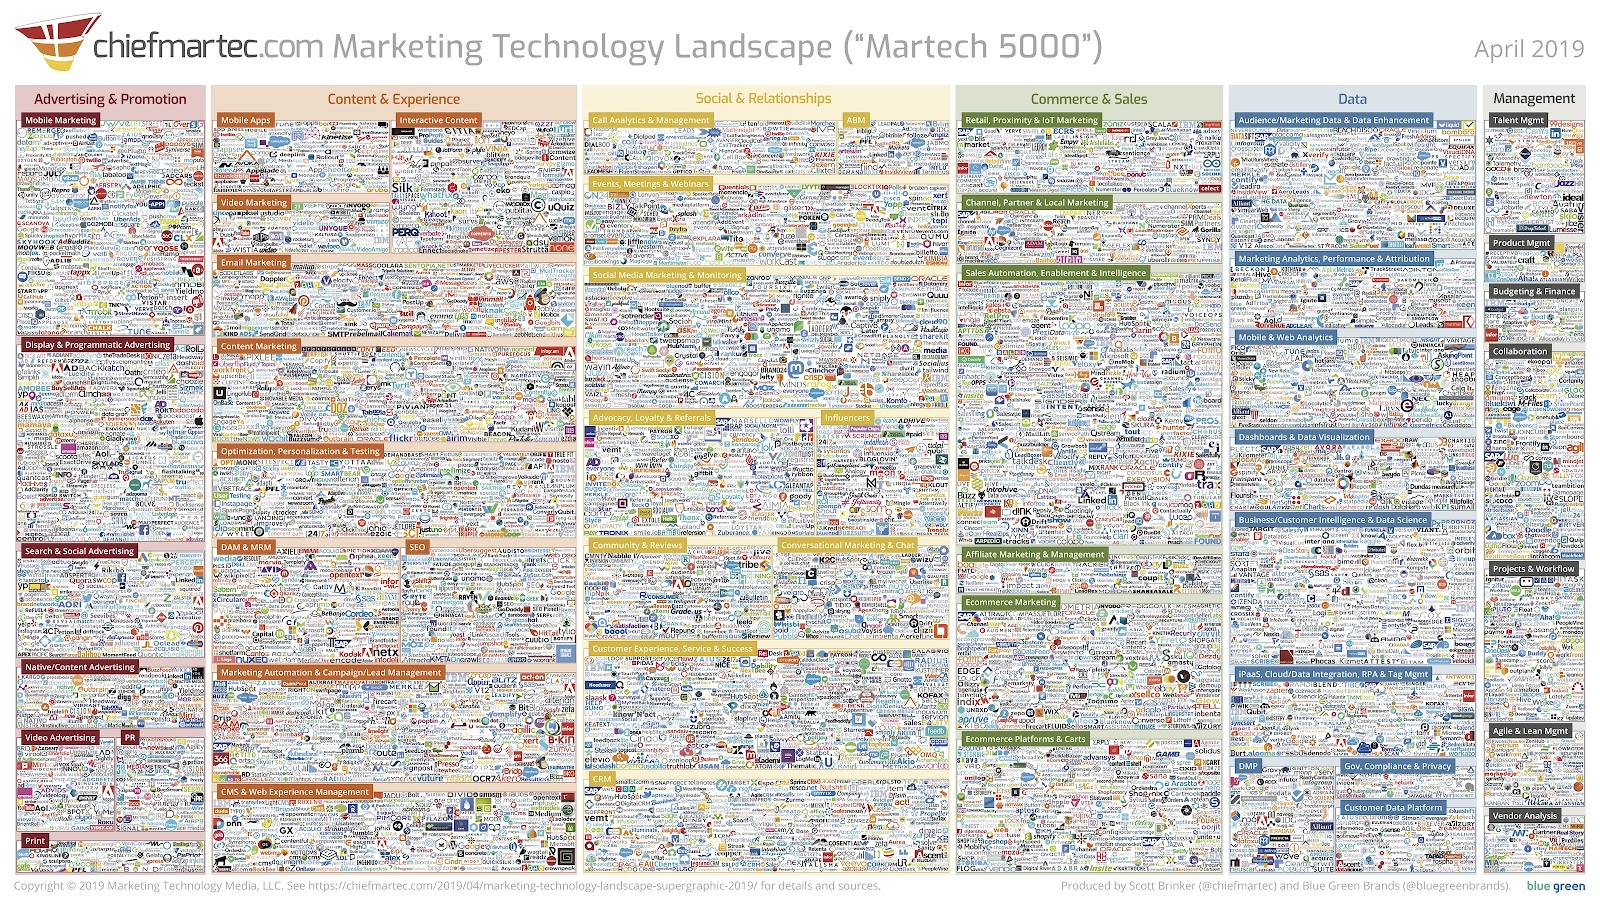 speed to lead martech products